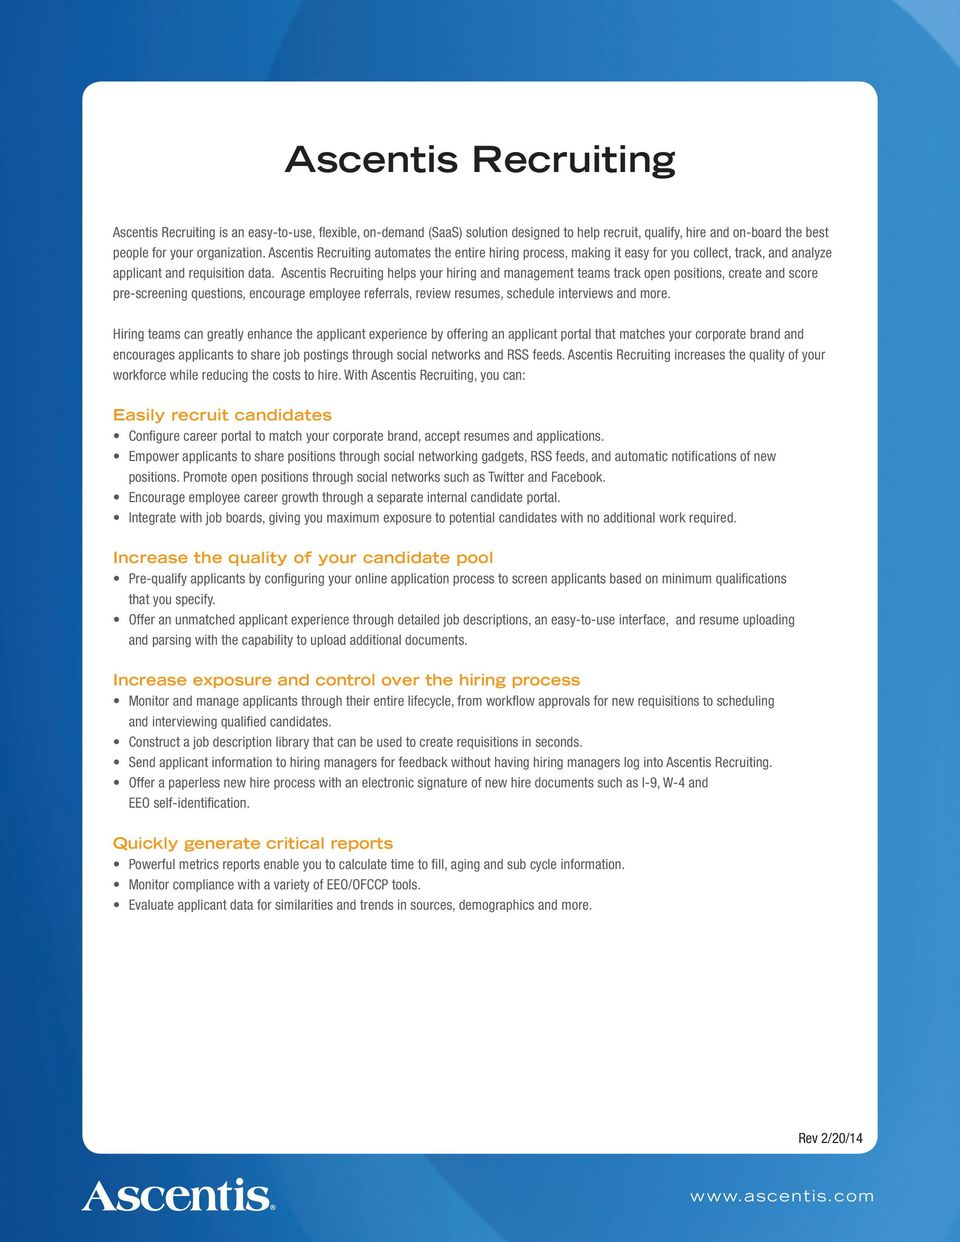 Ascentis HR  The easy-to-use HRIS  Comprehensive benefits